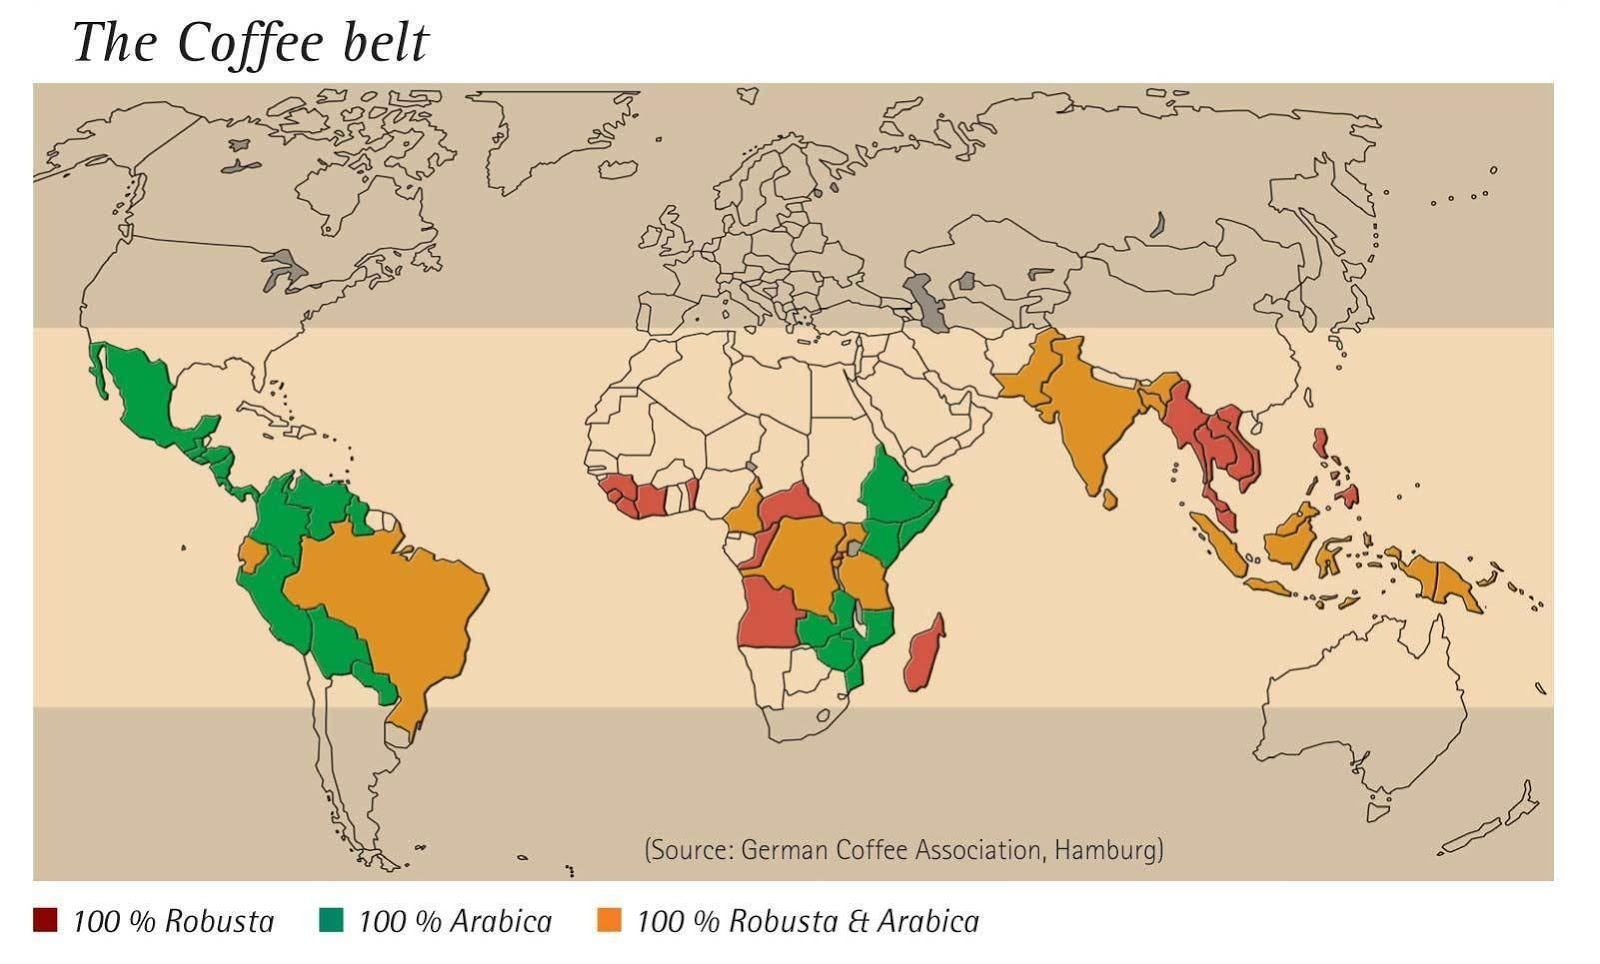 The Bean Belt is an imaginary line that covers coffee-growing regions in Central, South America, Africa, and Asia.